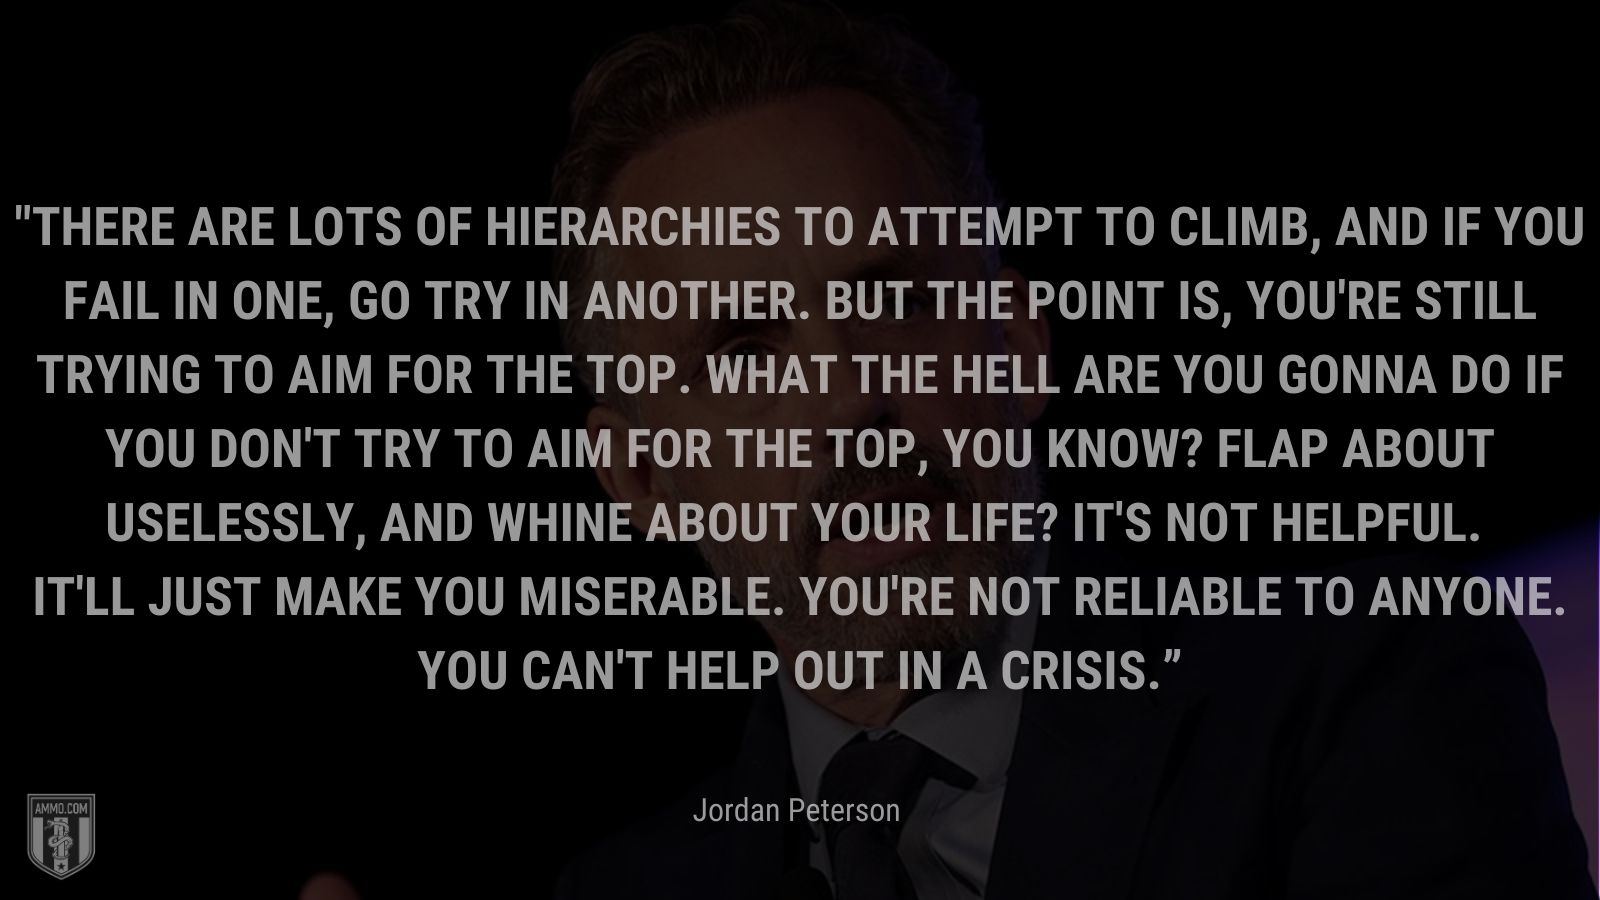 """""""There are lots of hierarchies to attempt to climb, and if you fail in one, go try in another. But the point is, you're still trying to aim for the top. What the hell are you gonna do if you don't try to aim for the top, you know? Flap about uselessly, and whine about your life? It's not helpful. It'll just make you miserable. You're not reliable to anyone. You can't help out in a crisis."""" - Jordan Peterson"""